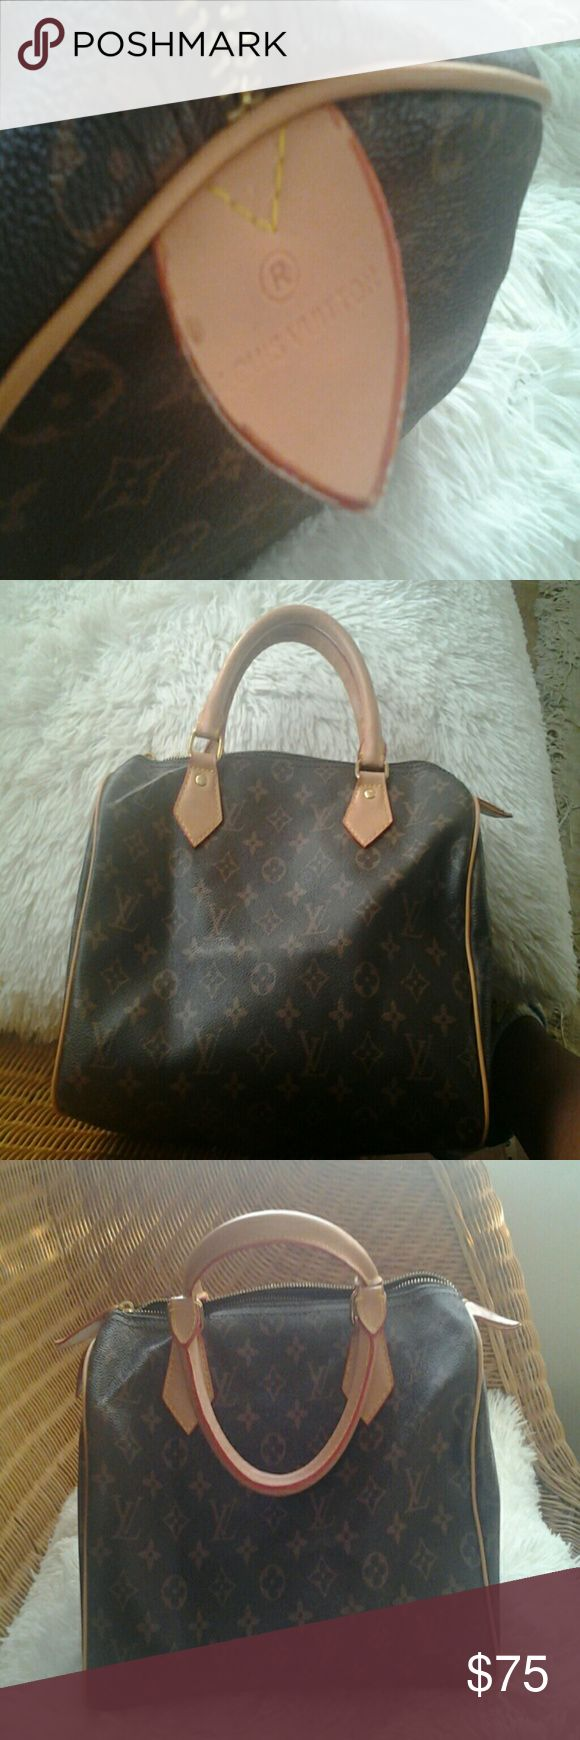 Resale Tote Handbag Available for sale with defective top zipper, opens at end otherwise in good condition & Other Stories Bags